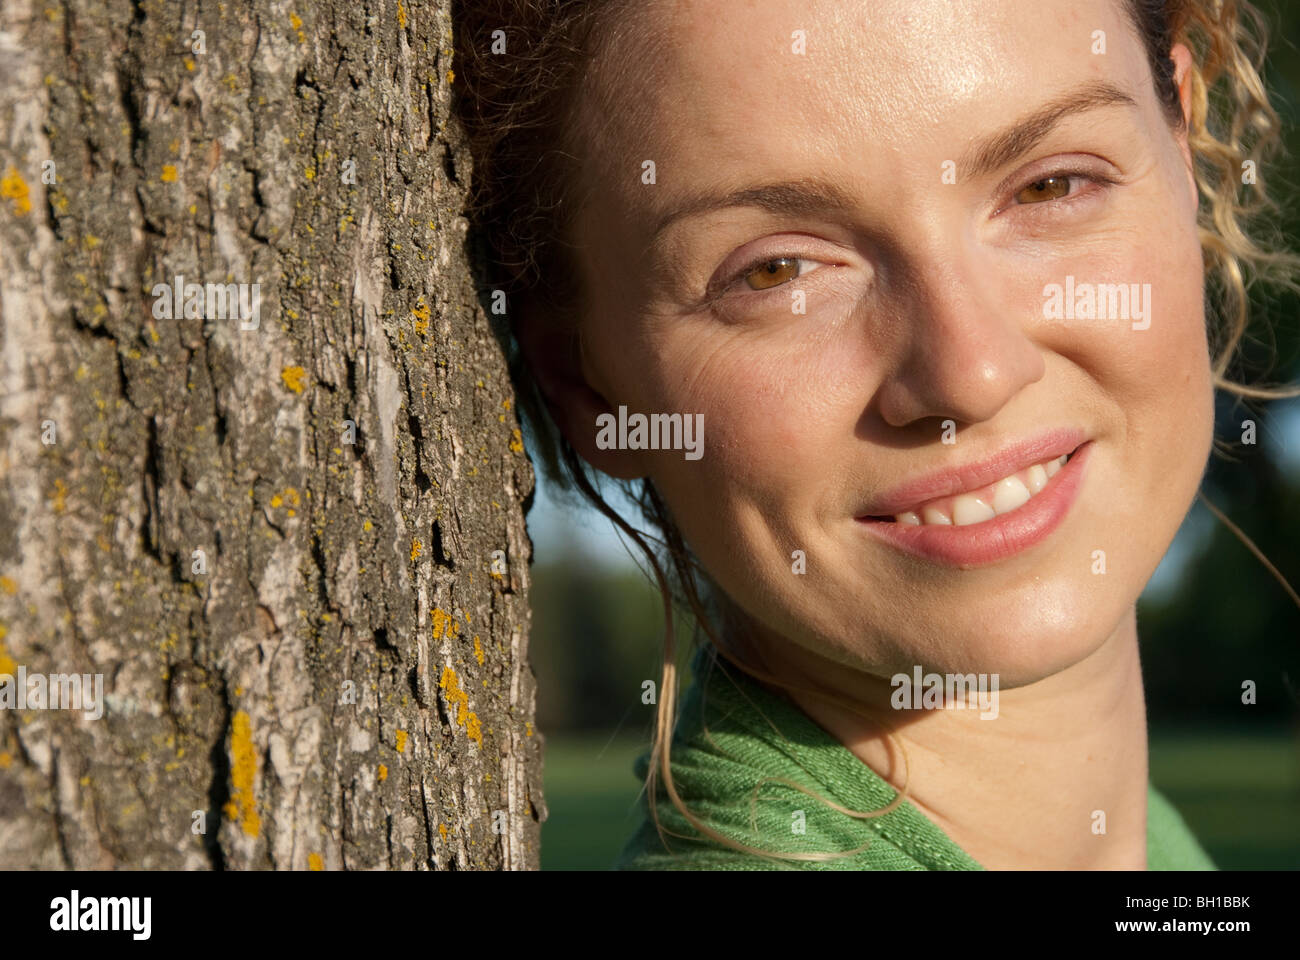 Head shot of woman in her 40s beside tree, Assiniboine Park, Winnipeg, Manitoba, Canada - Stock Image